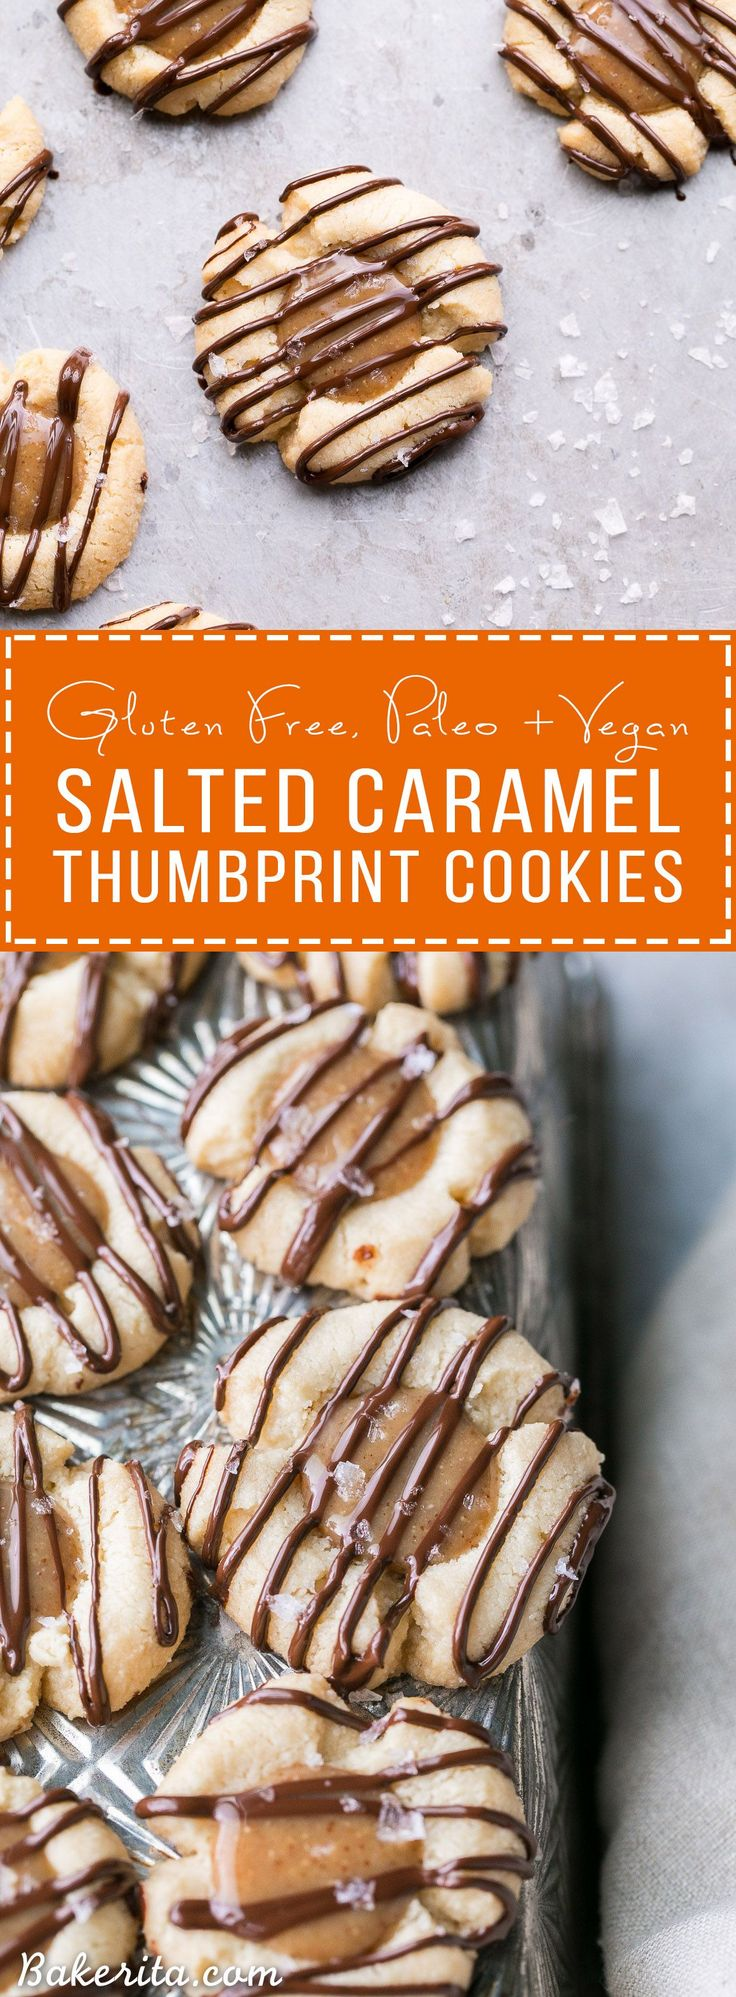 These Salted Caramel Thumbprint Cookies are super easy to make with only 6 ingredients total! The tender gluten-free and Paleo shortbread cookies are filled with a no-cook vegan caramel and topped off